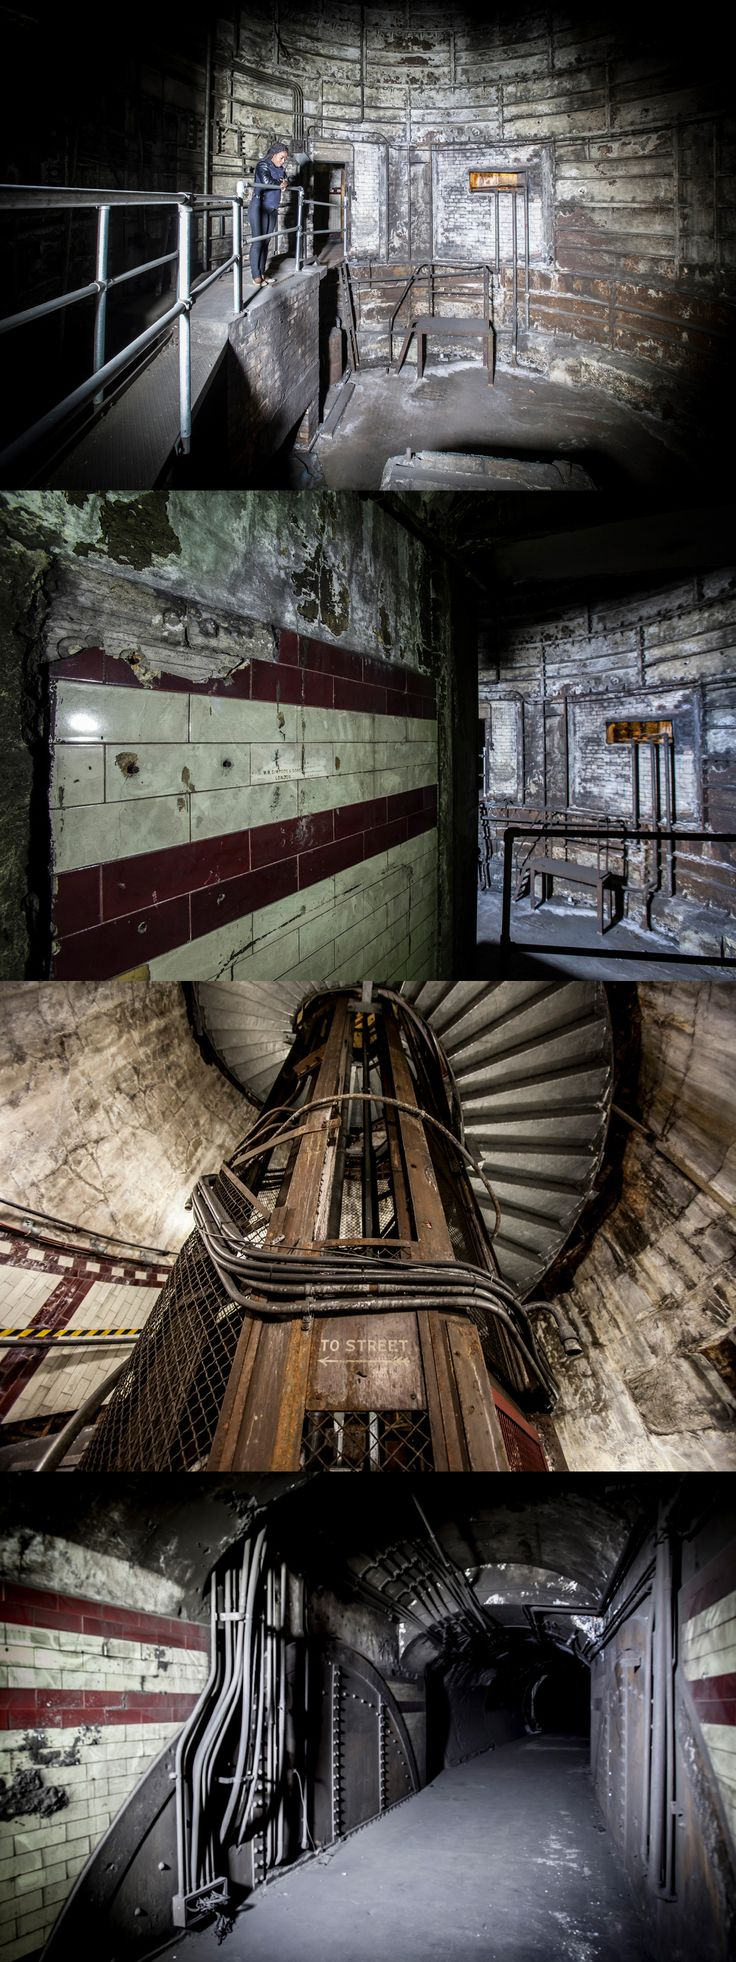 Creepy photos of this abandoned tube station in central London – and TfL are looking for a buyer, if you have a few million going spare...